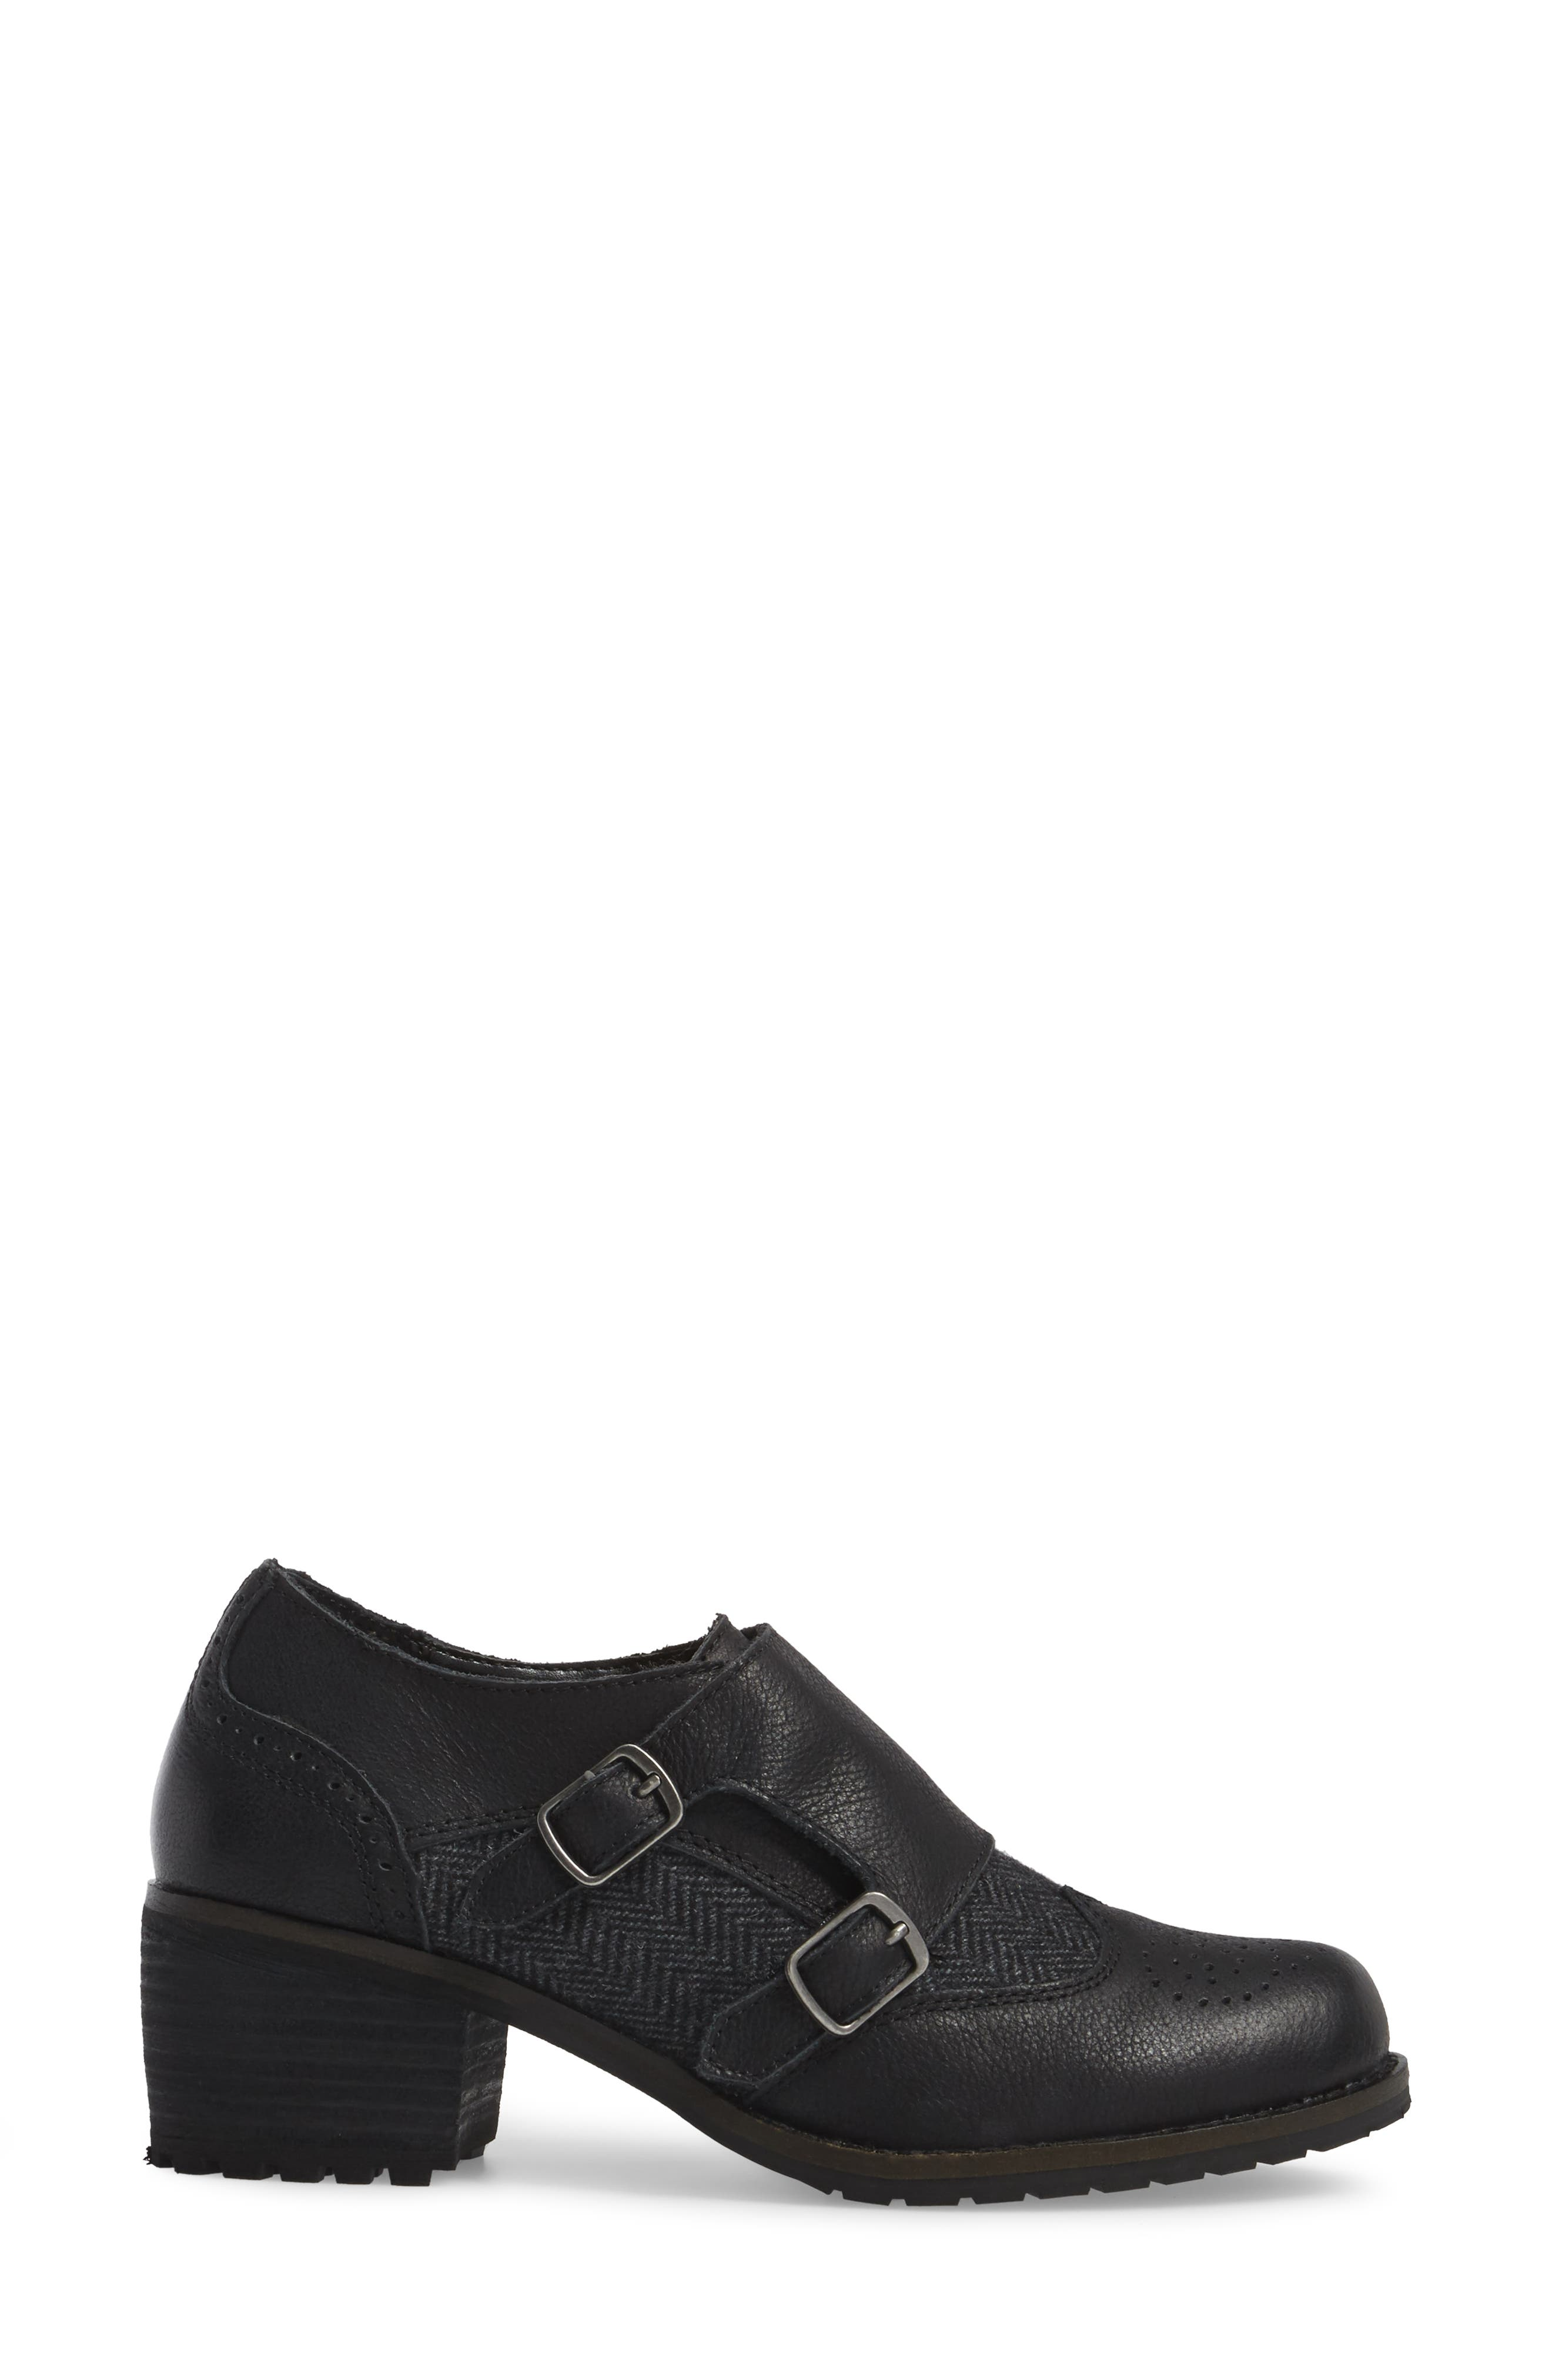 AETREX, Dina Double Monk Strap Ankle Boot, Alternate thumbnail 3, color, 001